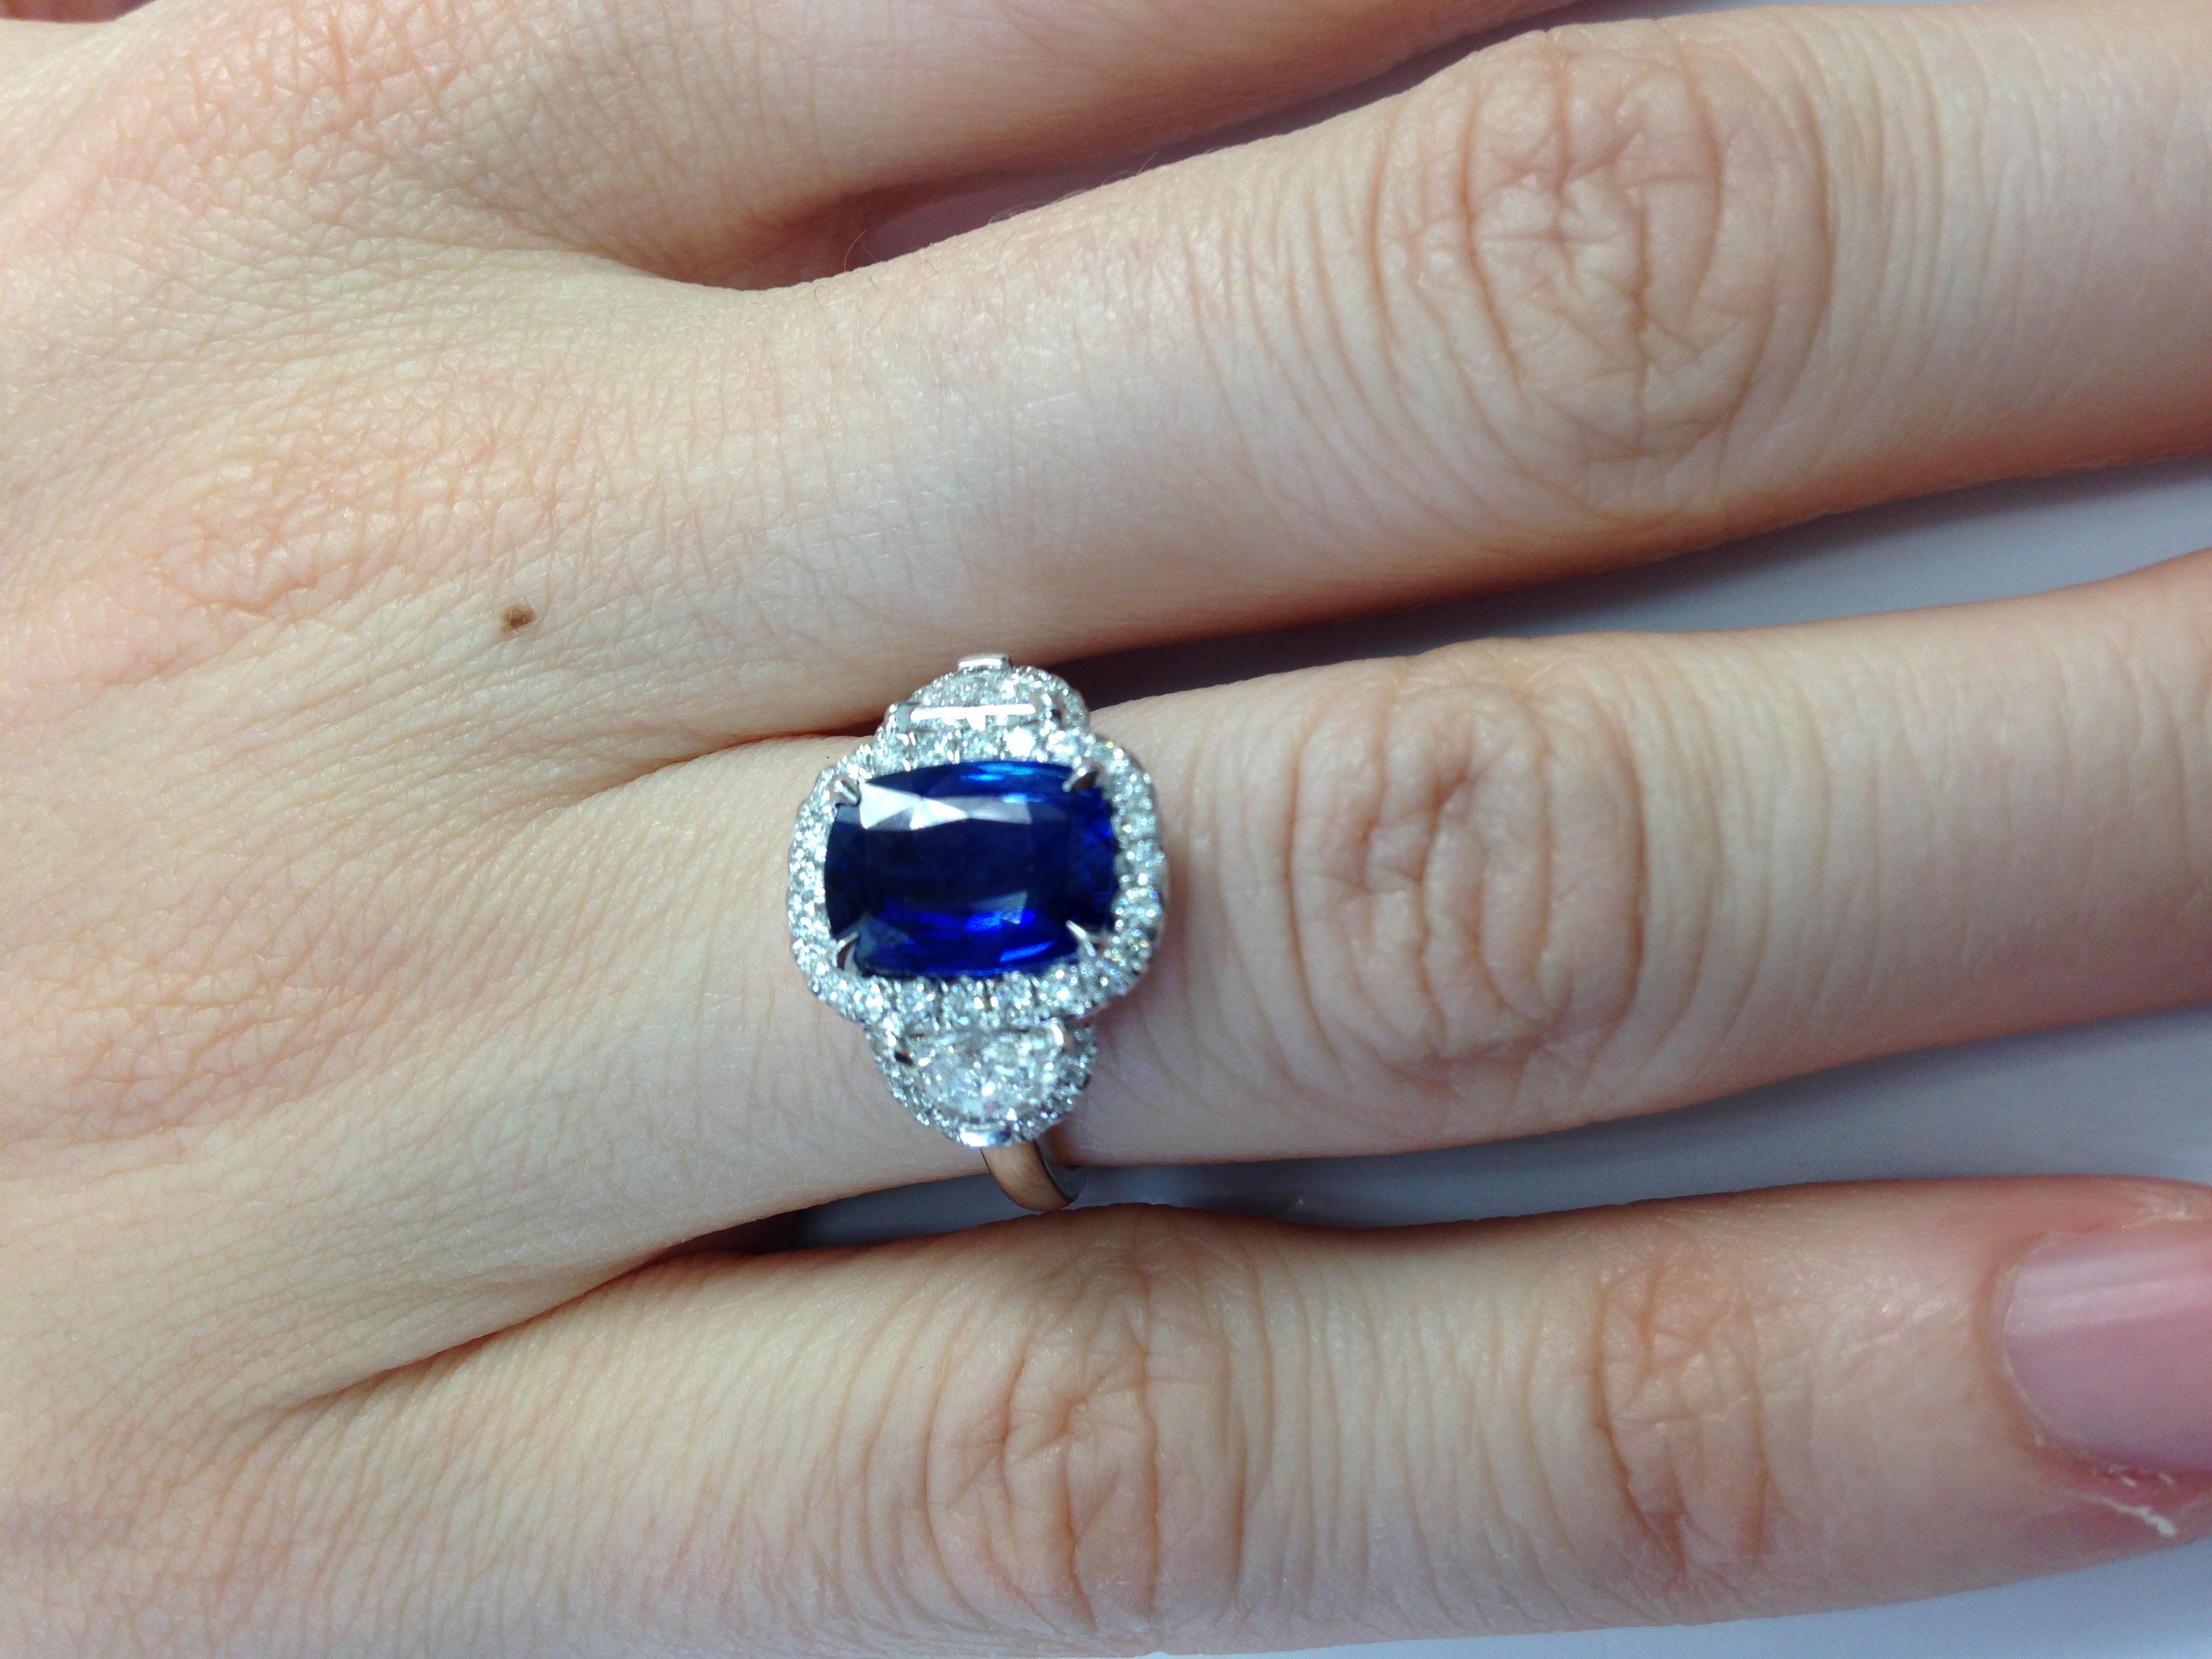 wedding engagement price all rings fine buy sku blue oval sapphire sapphires royal top ring joan wholesale